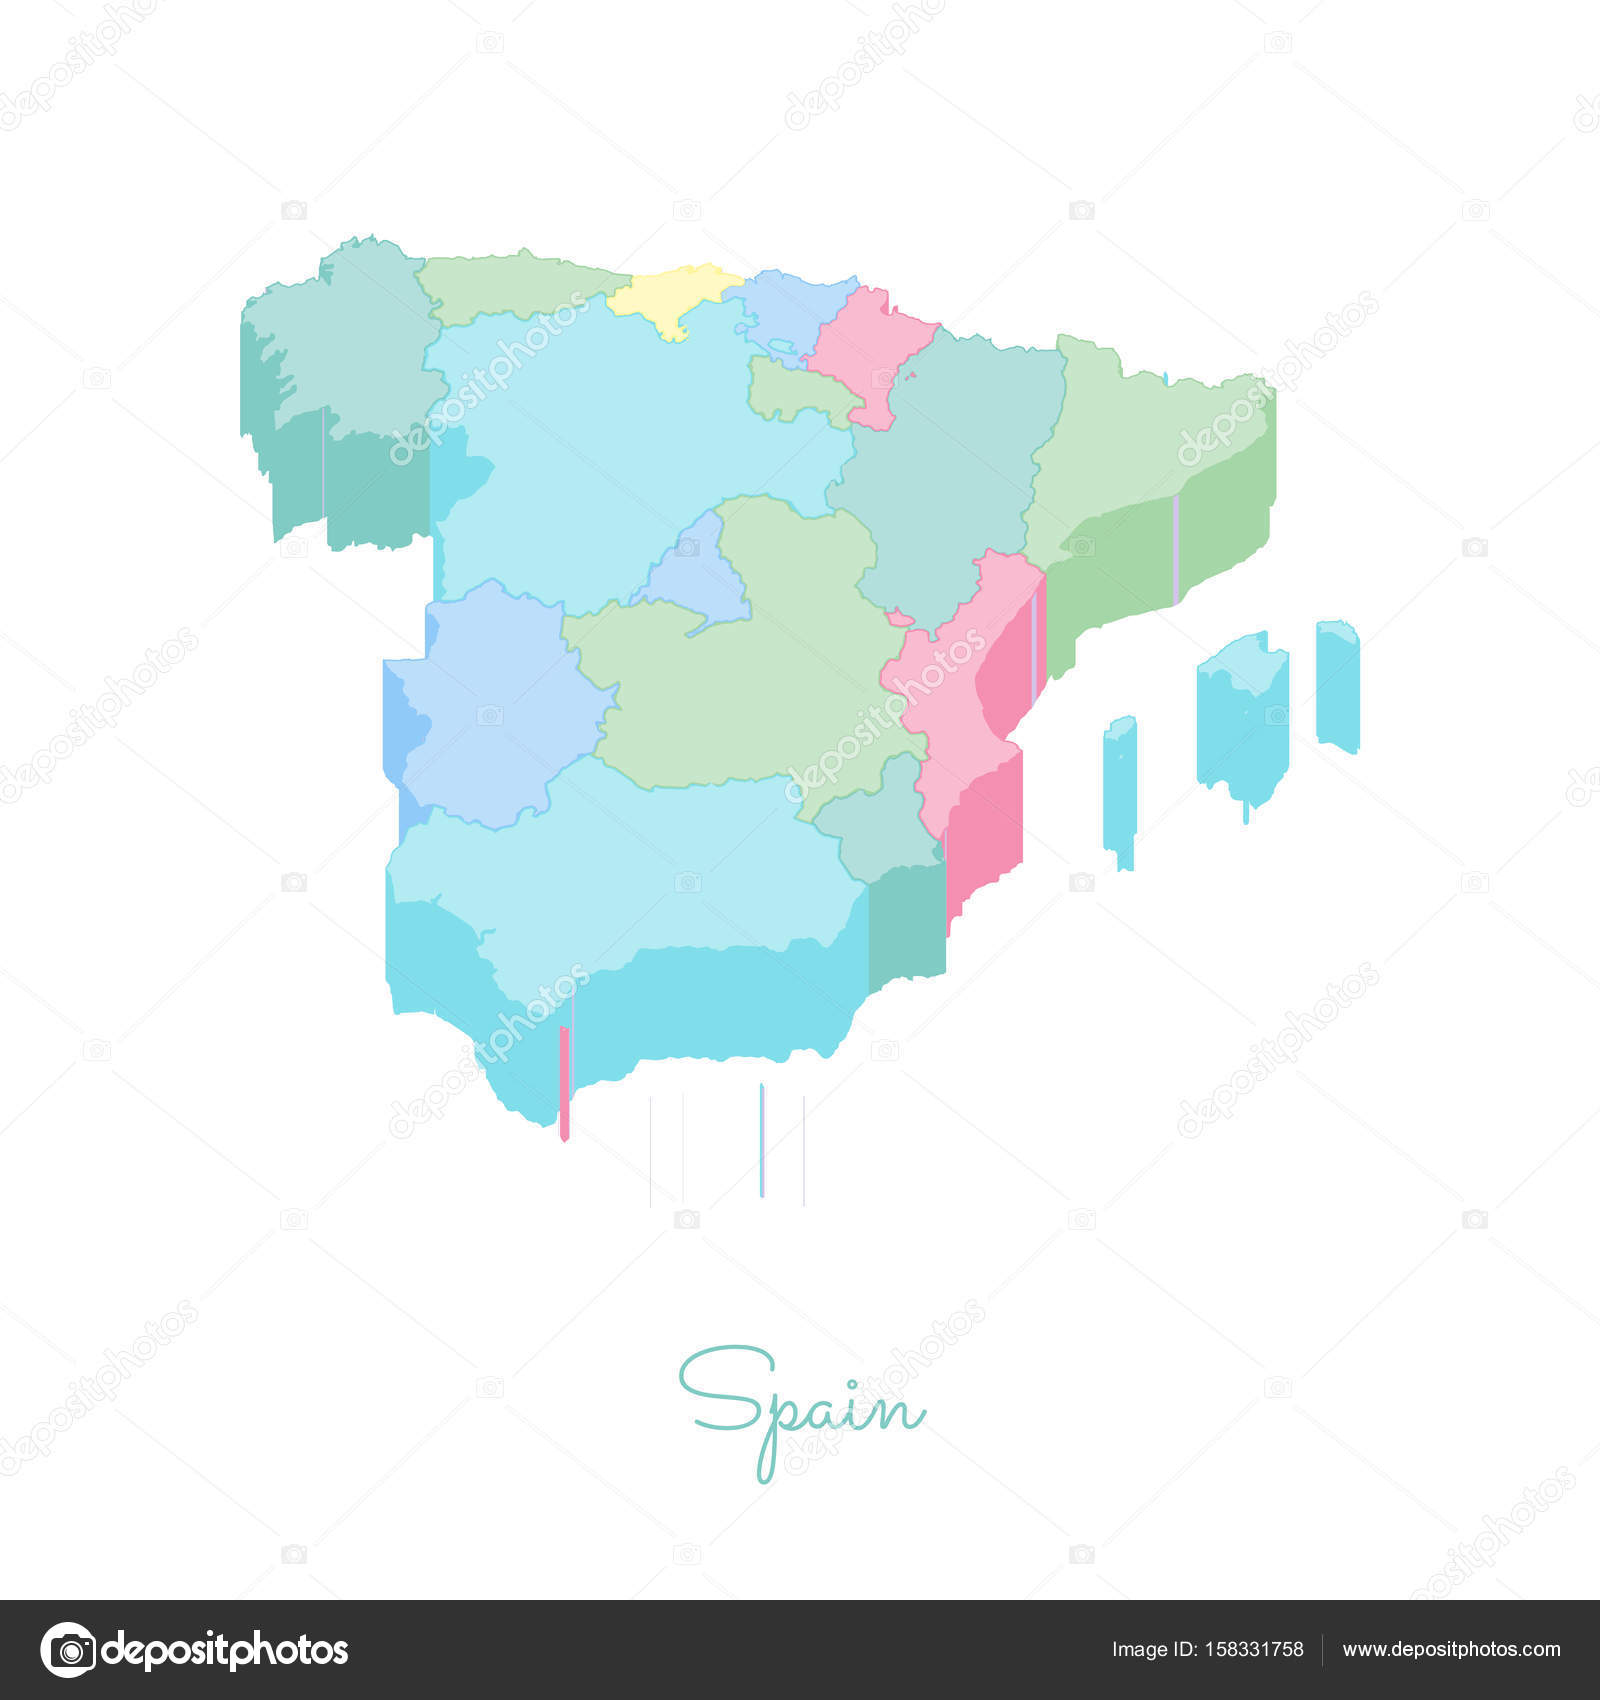 Spain region map colorful isometric top view Detailed map of ...